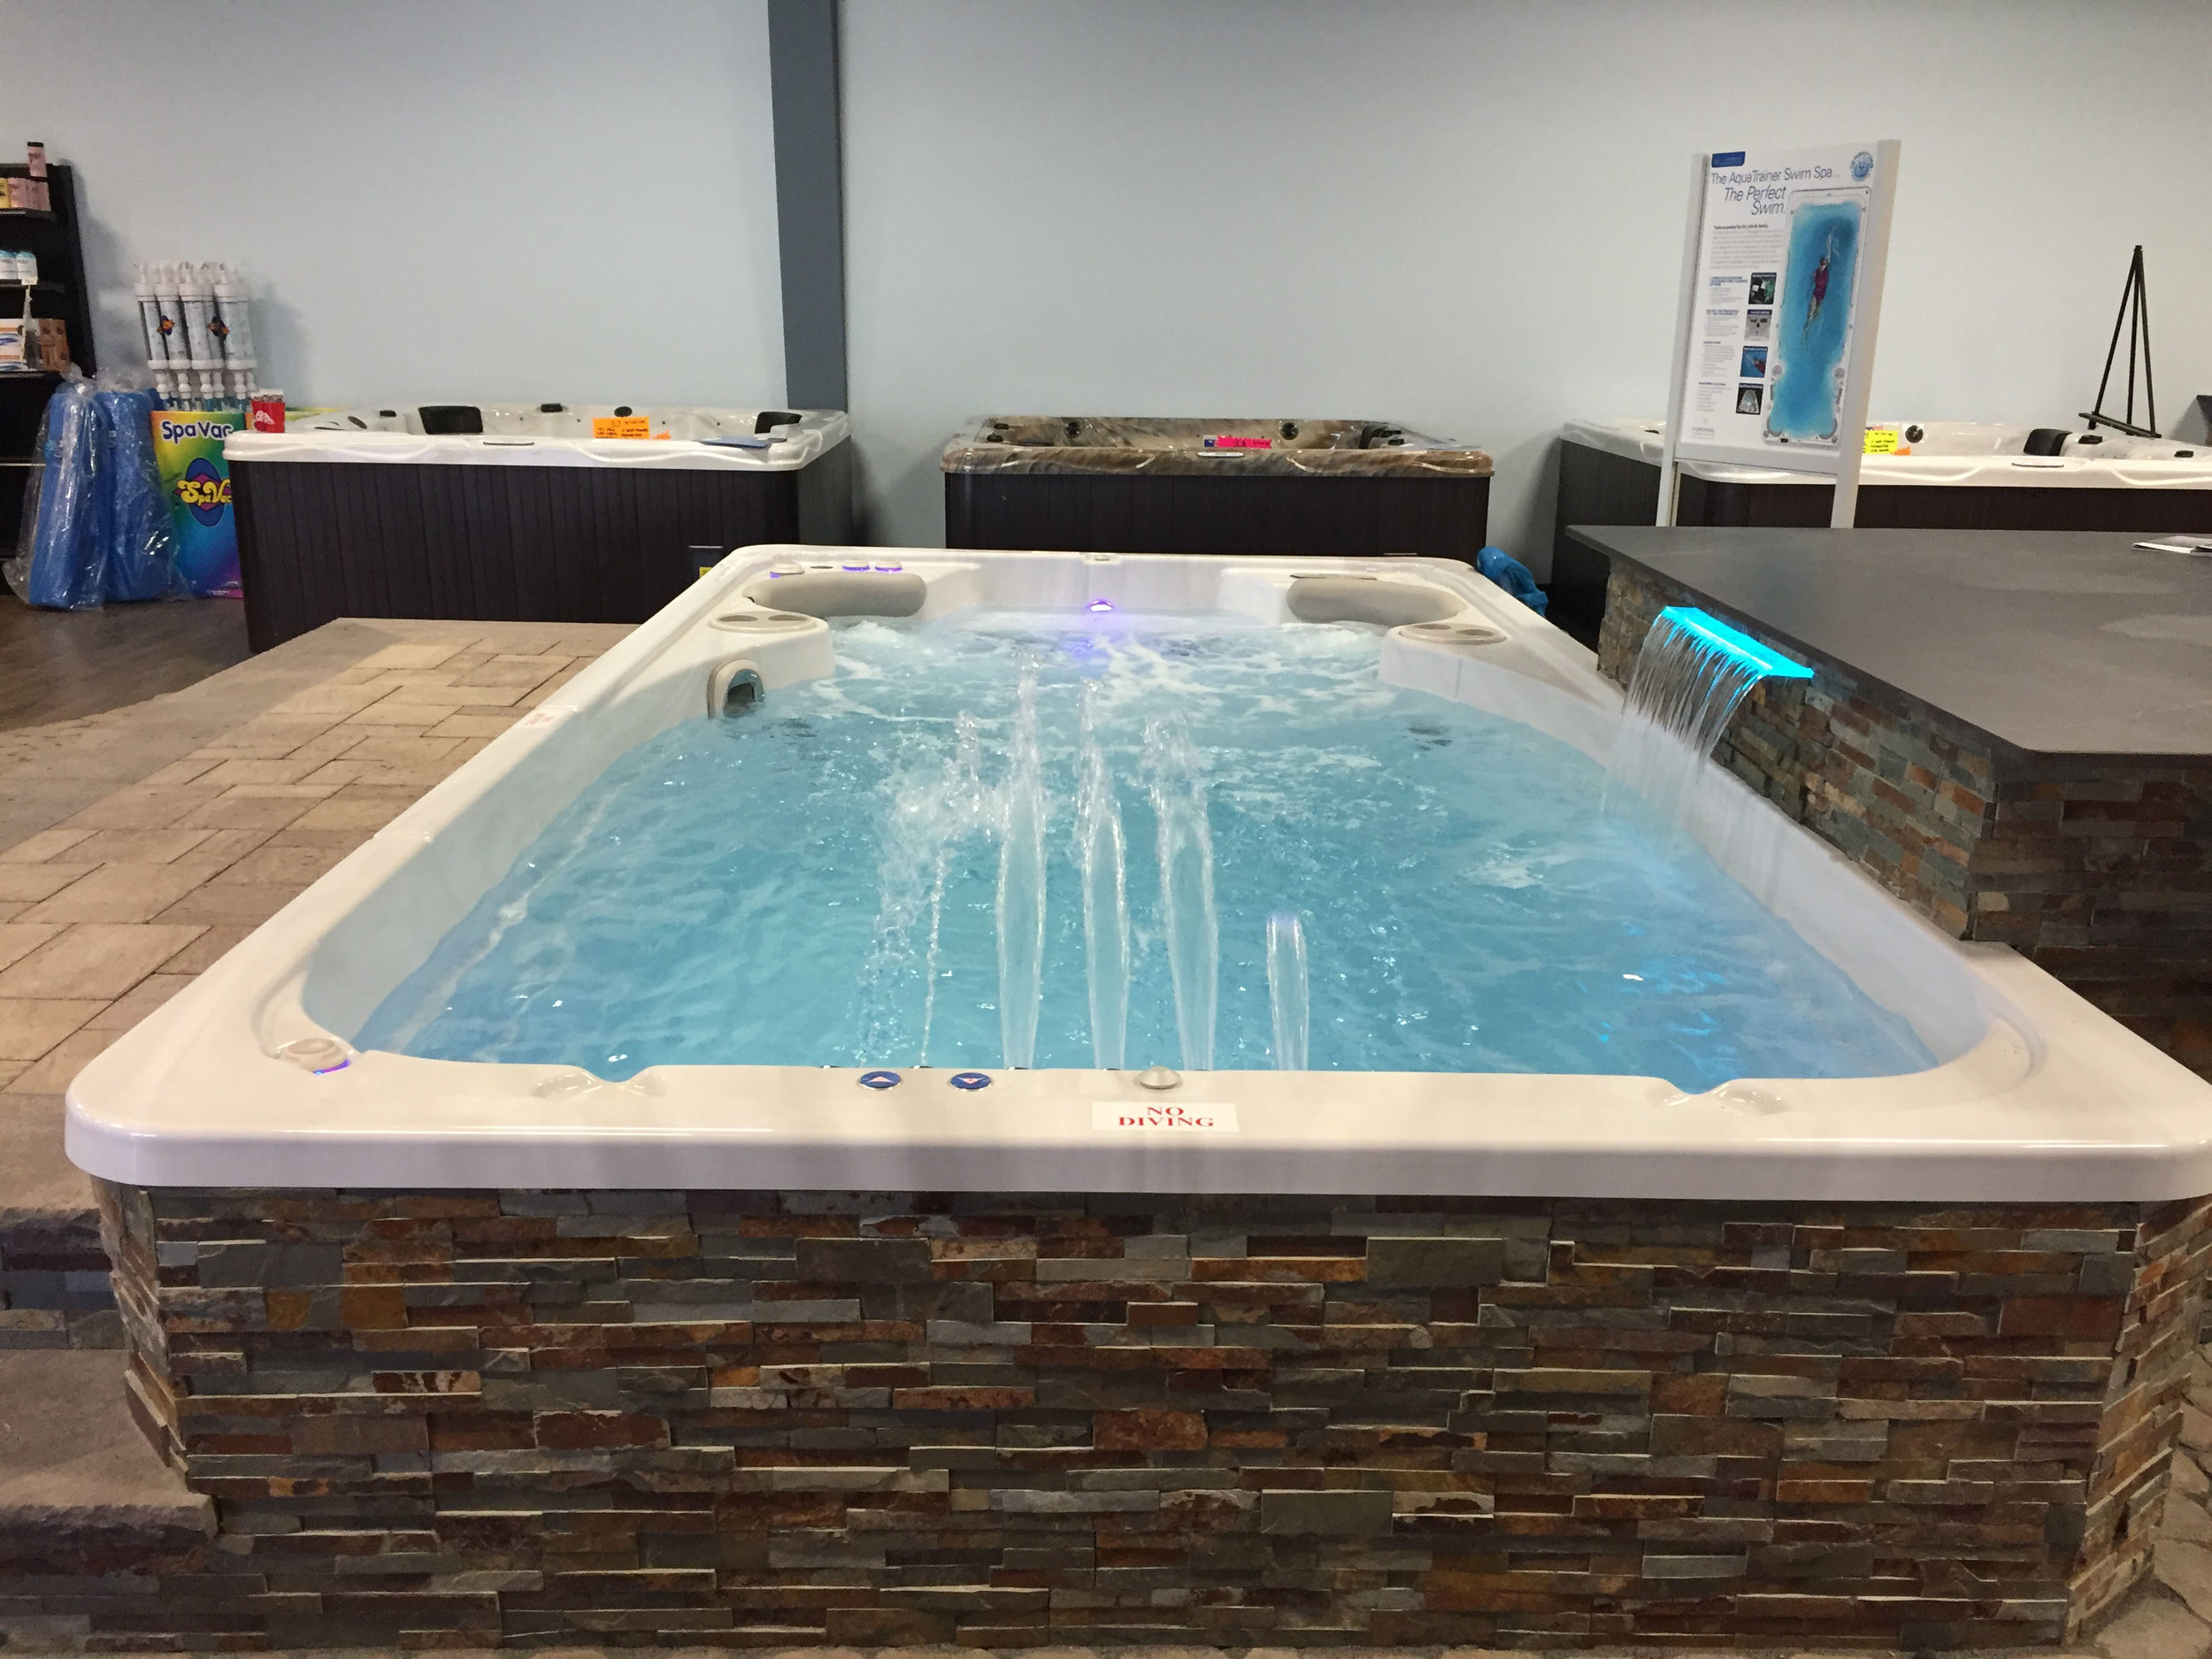 Top indoor hot tub paver design company in Long Island, NY